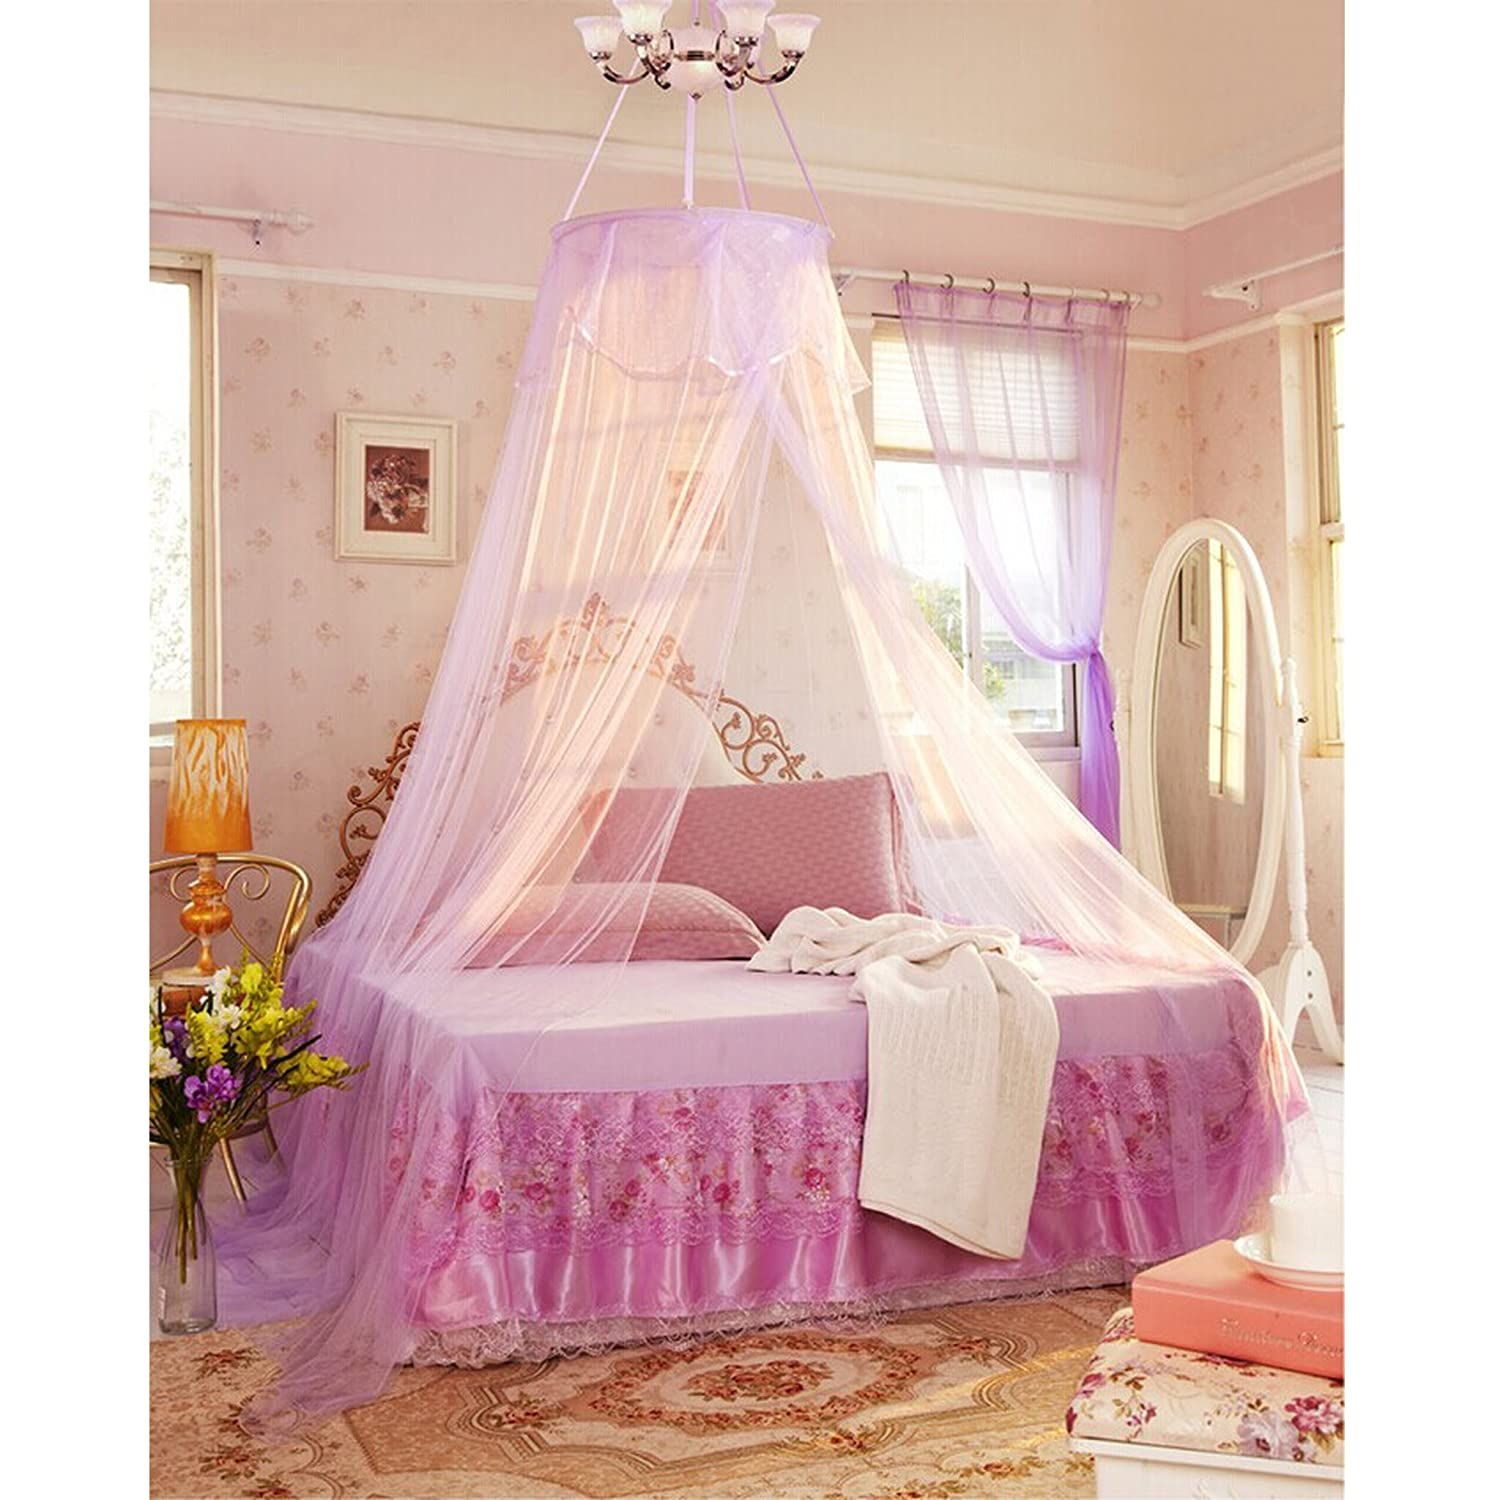 Gorgeous Bed Canopy One Size For All - Pink - Cream - Lilac - White (Cream) es-uk